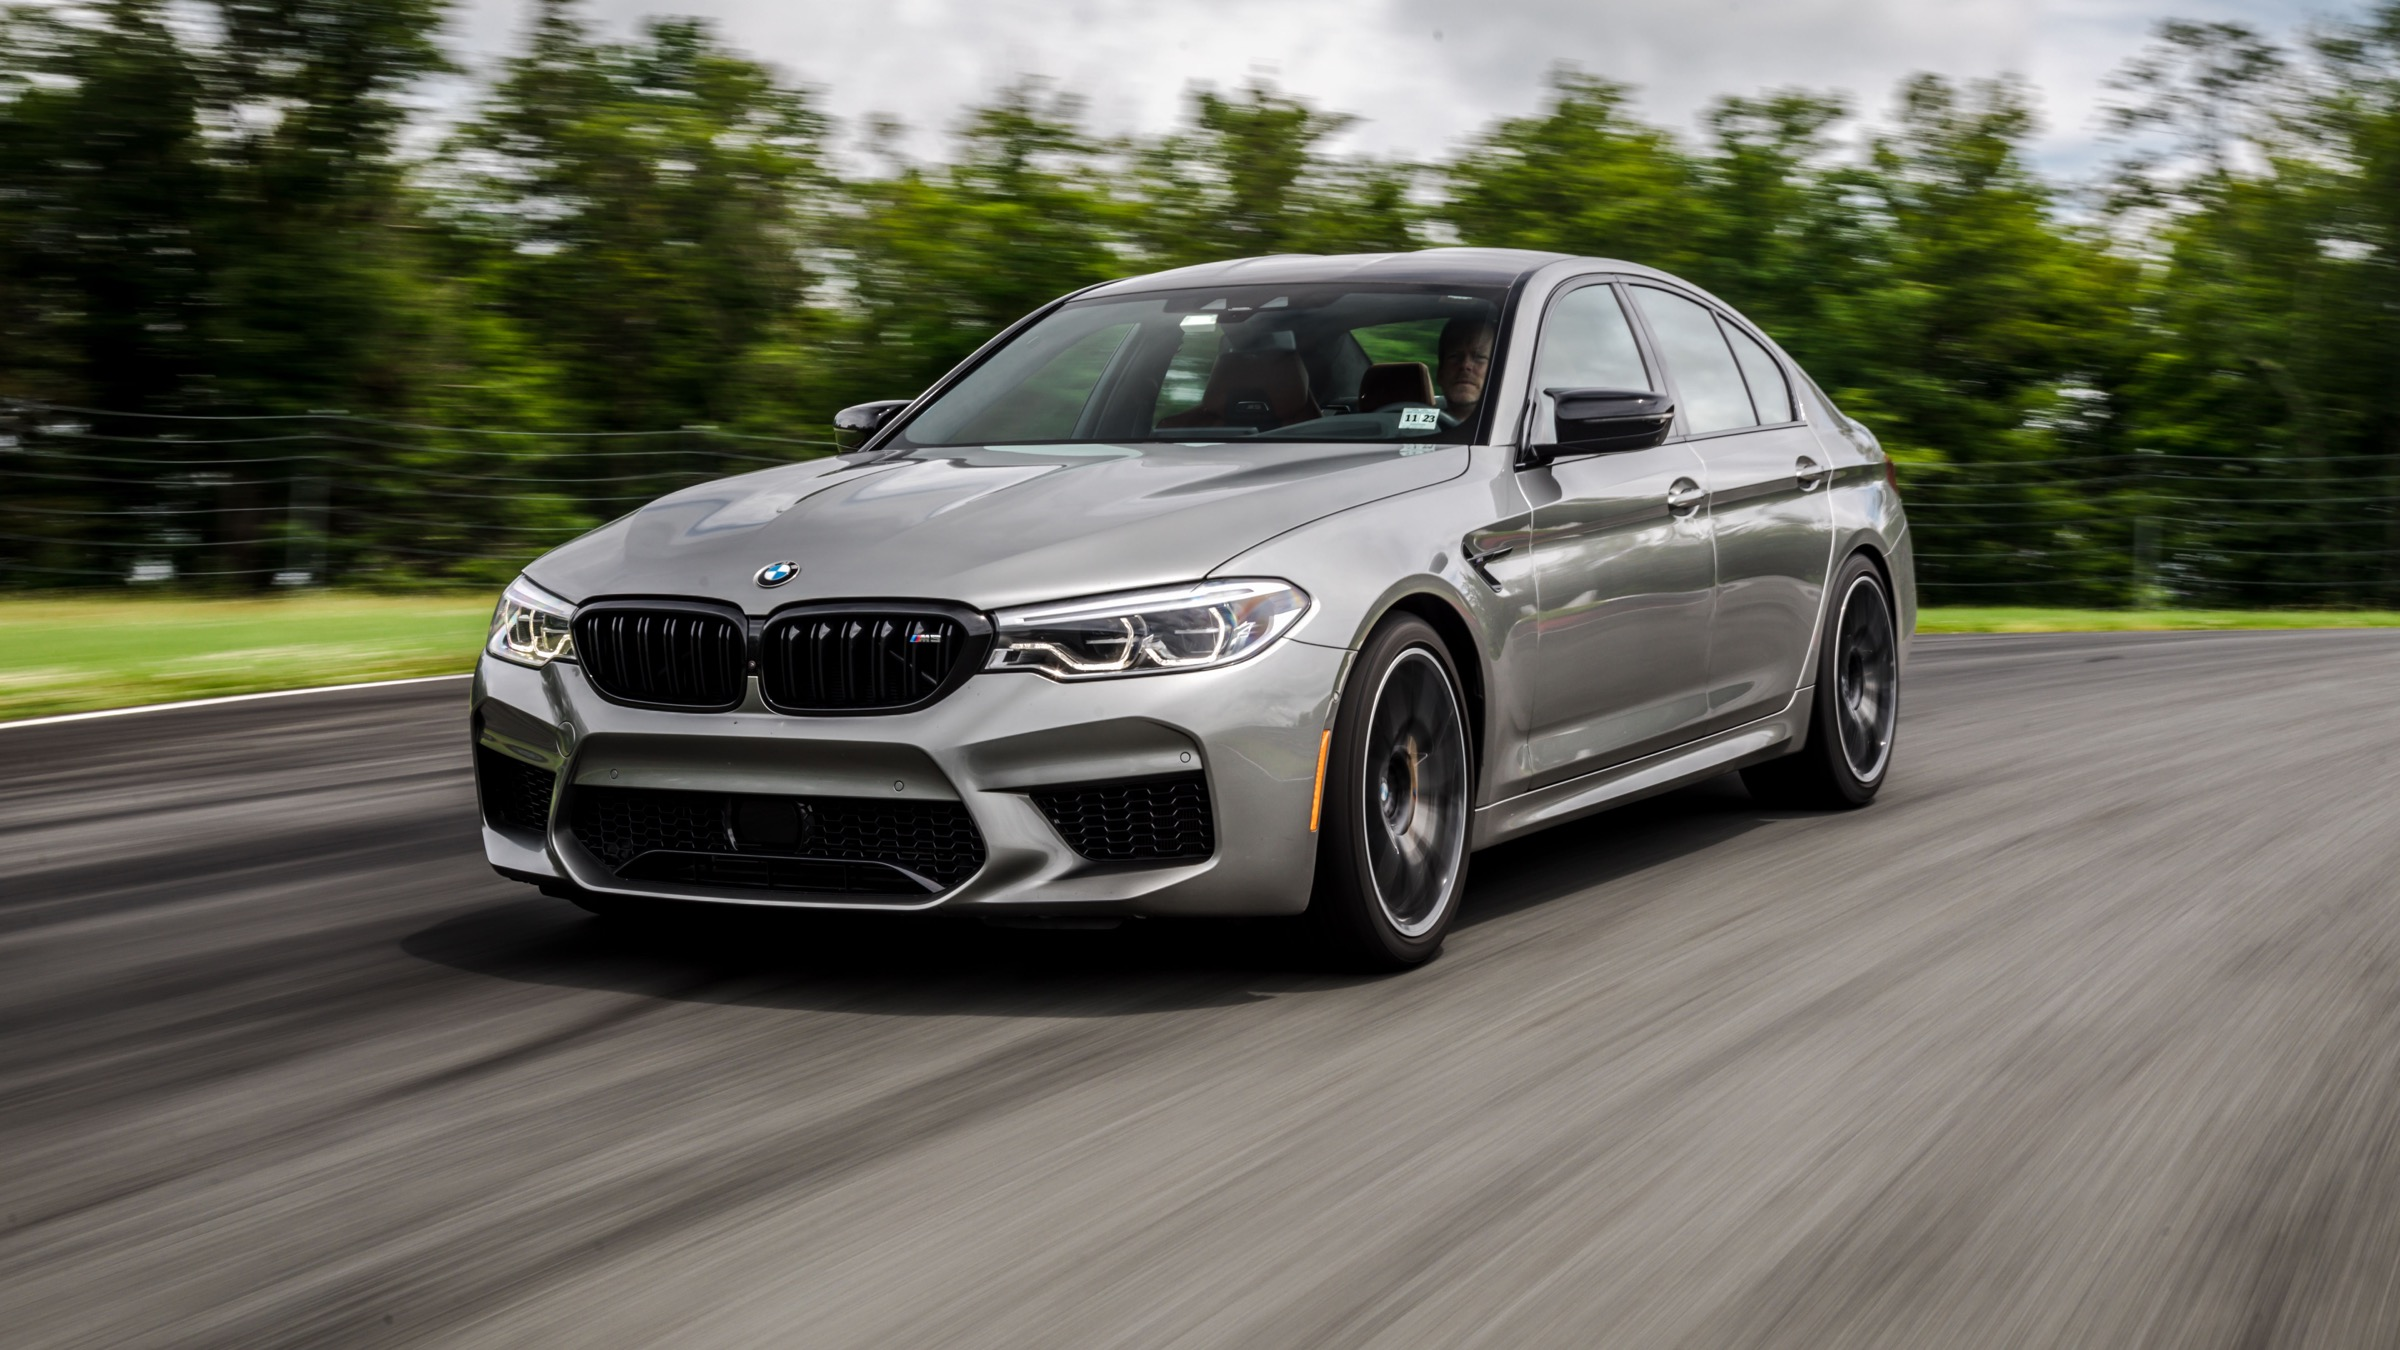 Monticello Motor Club >> 2020 BMW M5 Competition First Drive Review | Driving impressions, specs, photos | Autoblog